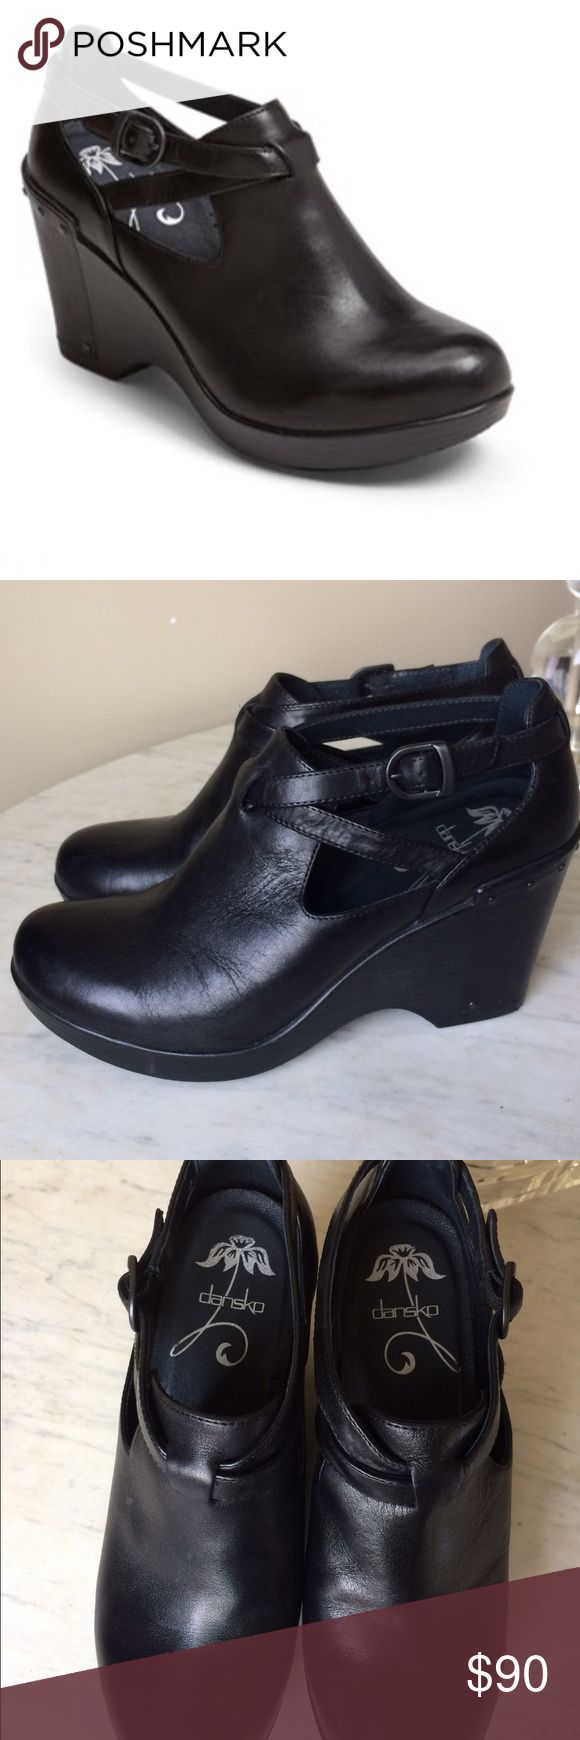 """Dansko Franka Playform Wedge Hand-antiqued leather enhances the modern silhouette of a round-toe pump balanced by a curvy platform heel. 3 1/2"""" heel; 1"""" platform. Adjustable strap with buckle closure. Leather upper and lining/polyurethane sole. Dansko Shoes Ankle Boots & Booties"""